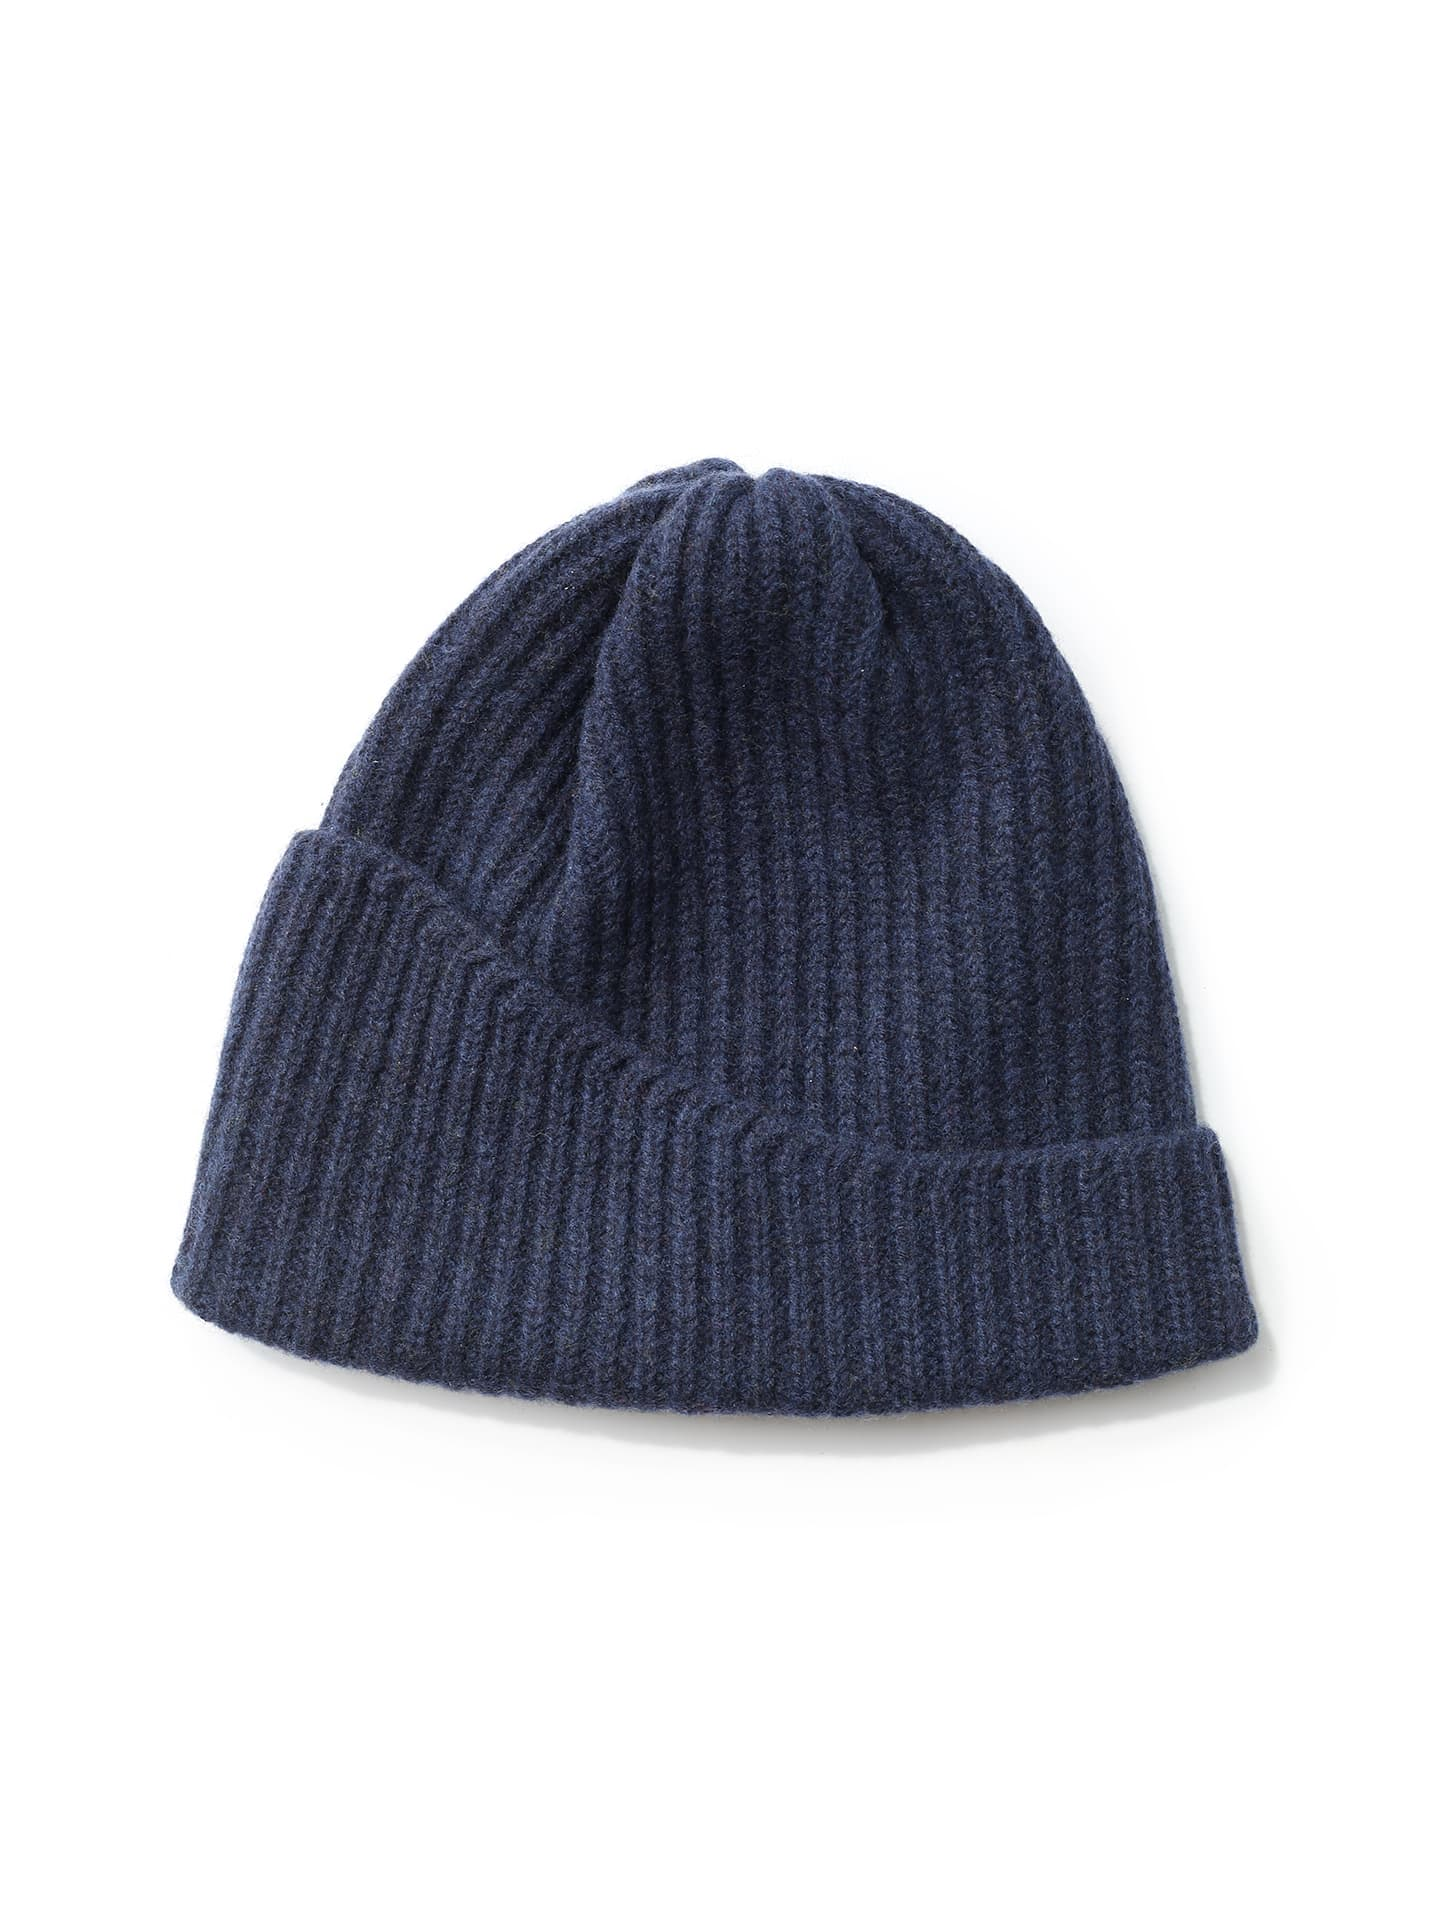 Reshaped Beanie Lambswool - Marine Blue